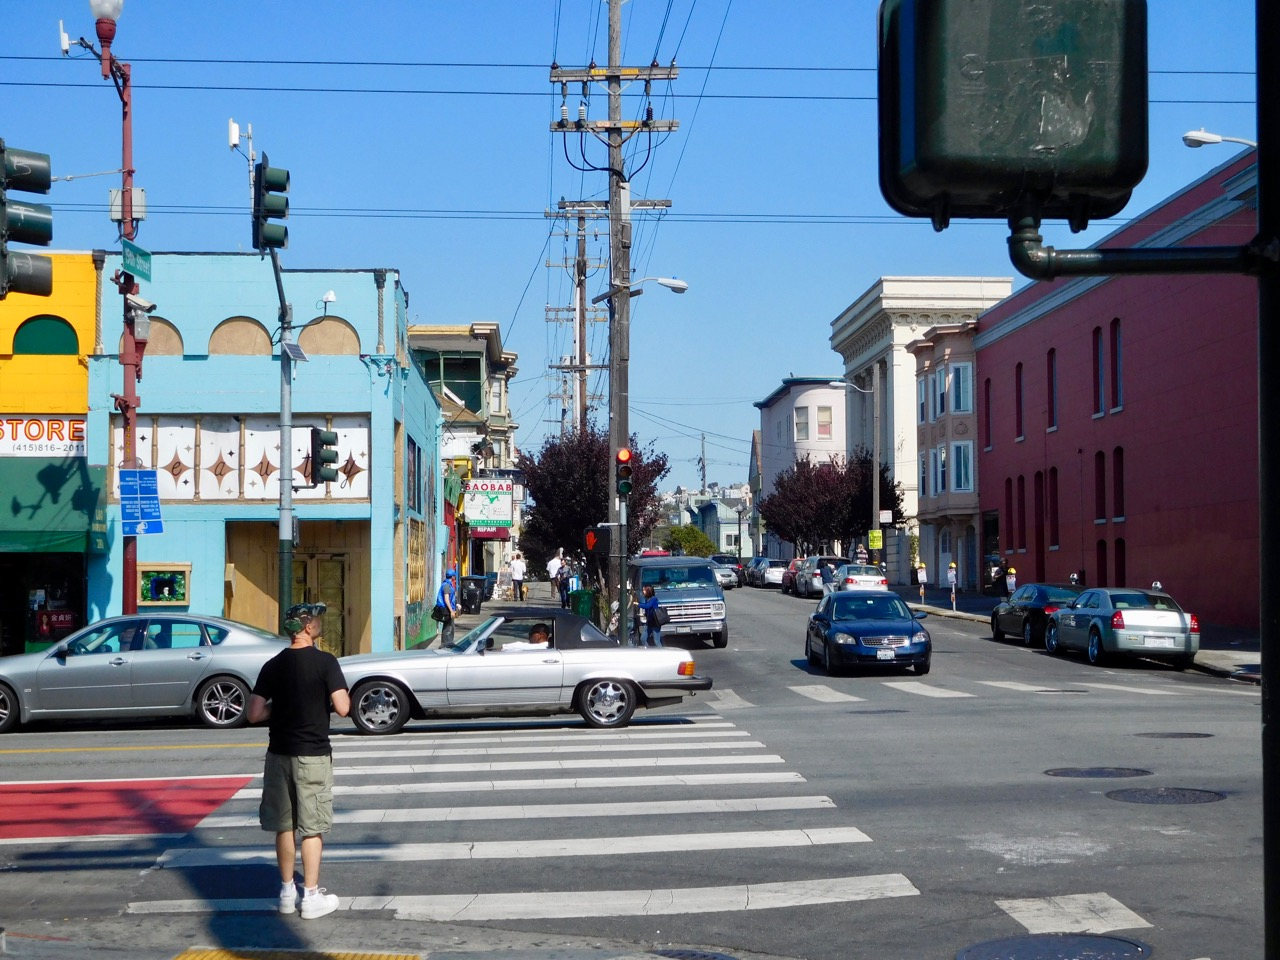 San Francisco Photo Journal - a day in SF (10)